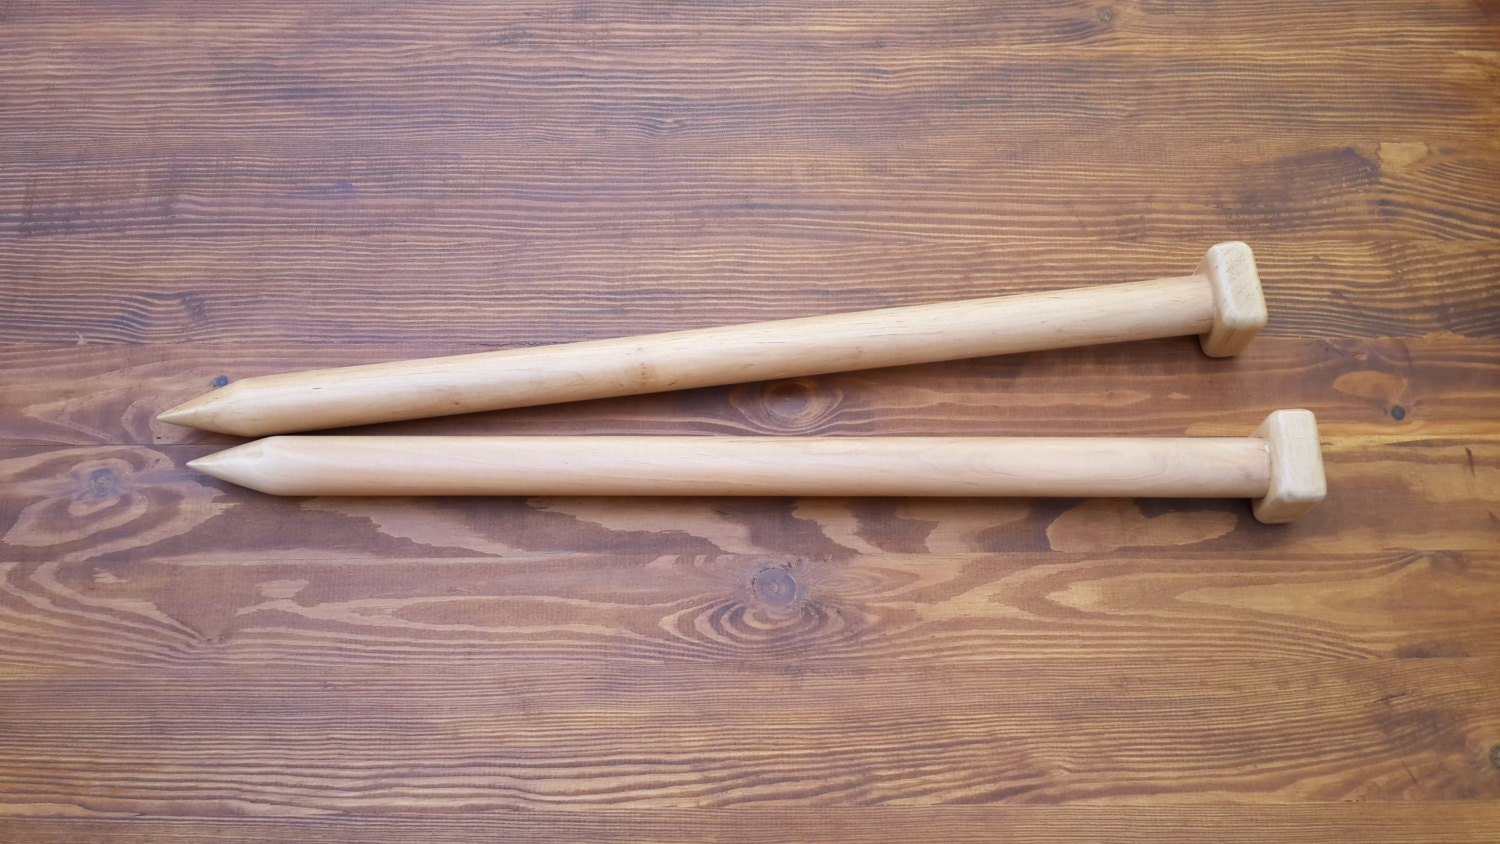 Giant Knitting Needles Uk : Free shipping big knitting needles giant wood